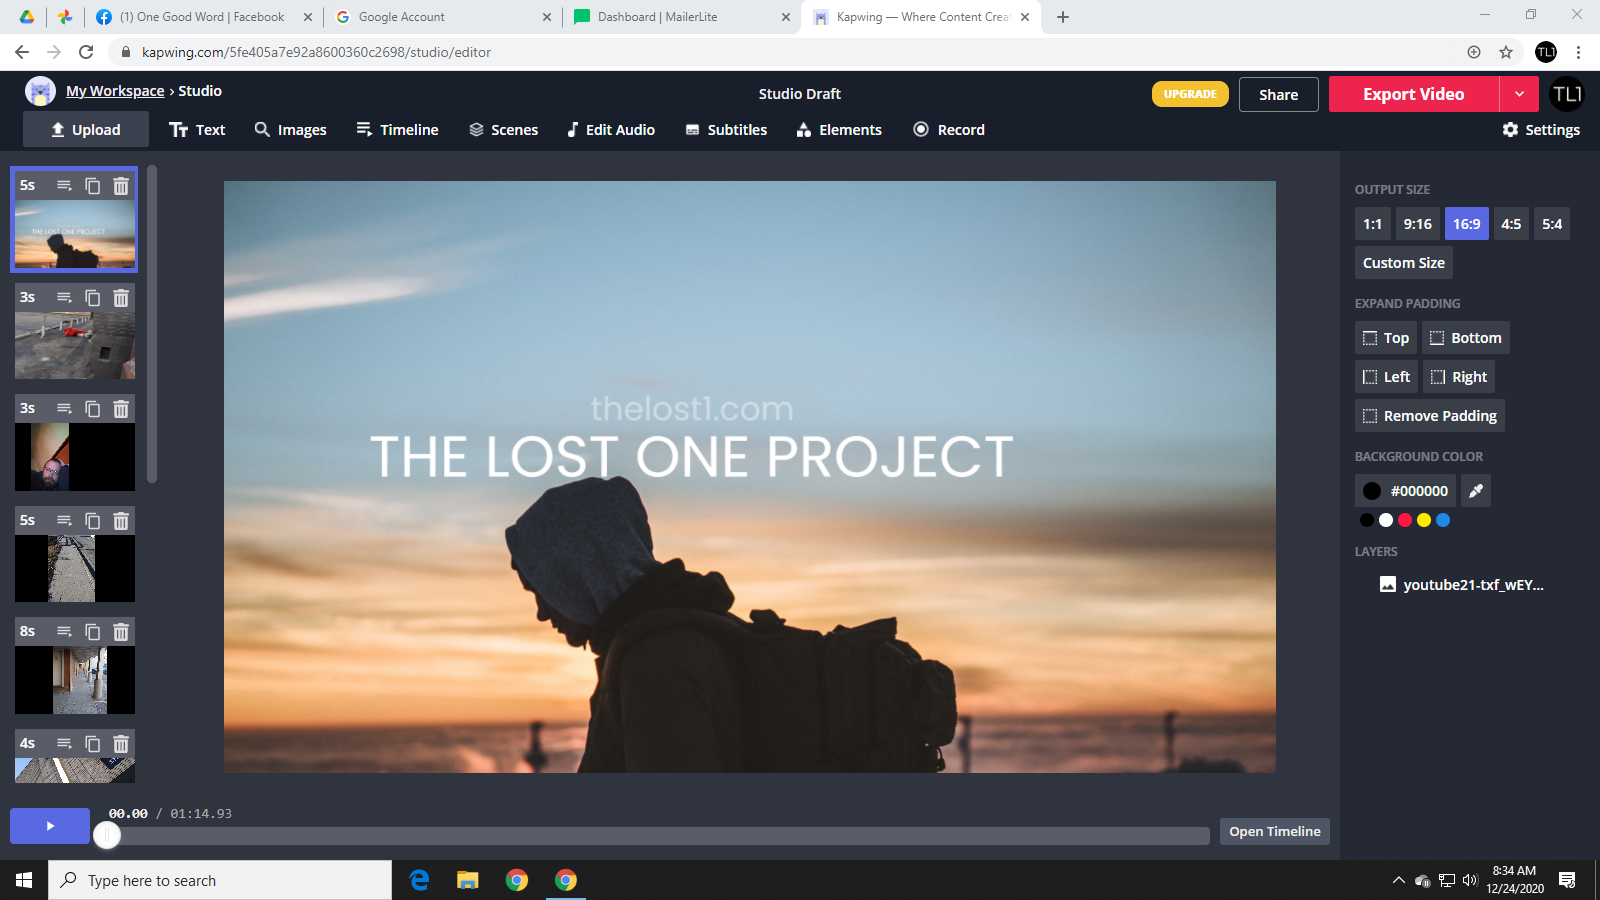 The Project Begins with a DRUNK Christian?